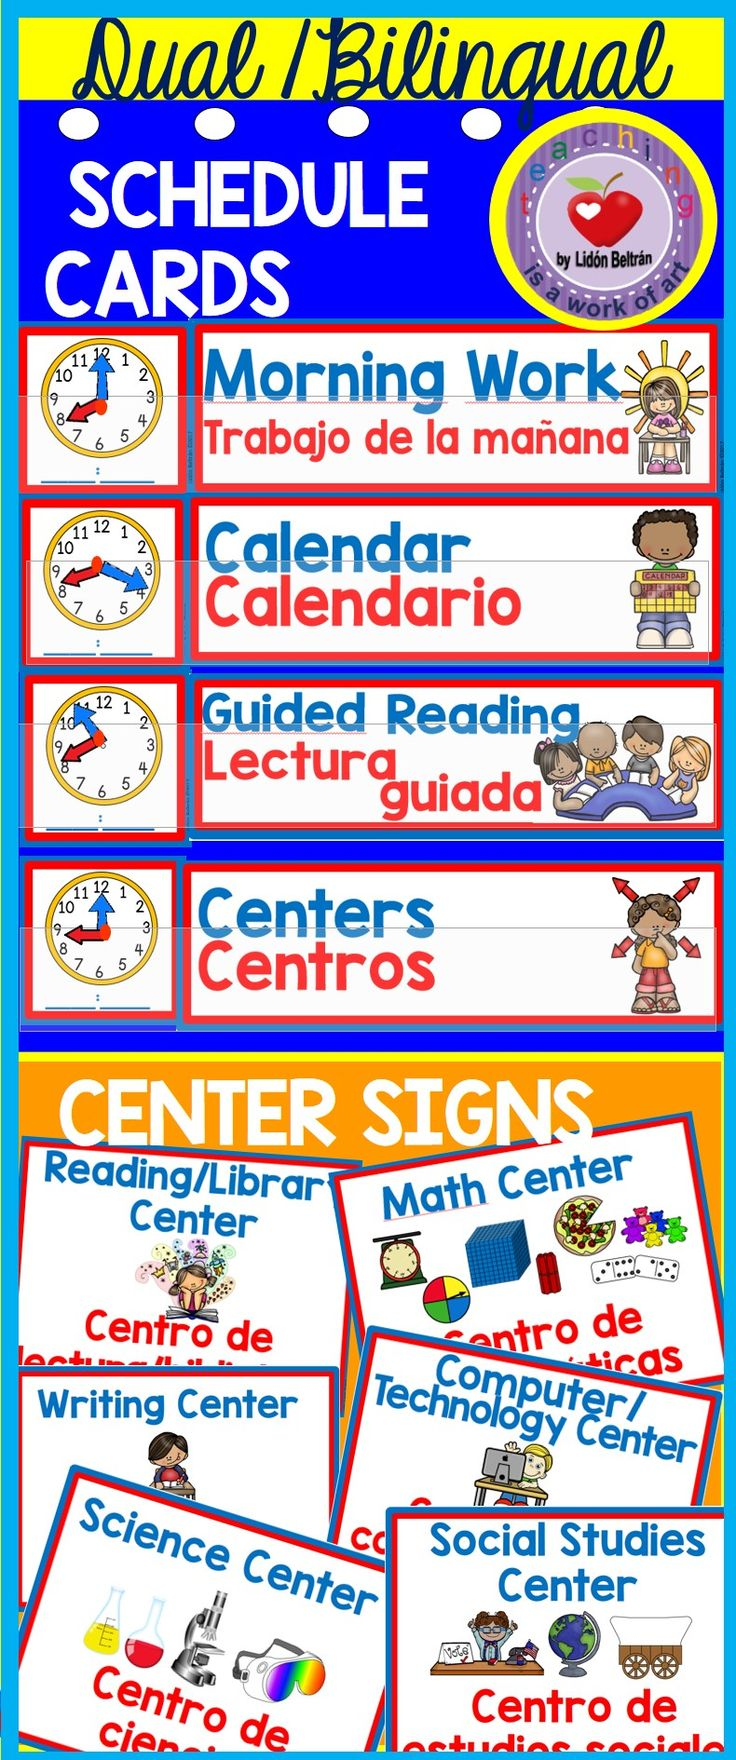 Dual/Bilingual Daily Schedule Cards and Center Signs. This set includes 24 Daily Schedule Cards and 10 Center Signs to organize your room and help bilingual students, newcomers and ELL students. The labels use Gómez&Gómez color codes (blue for English, red for Spanish).